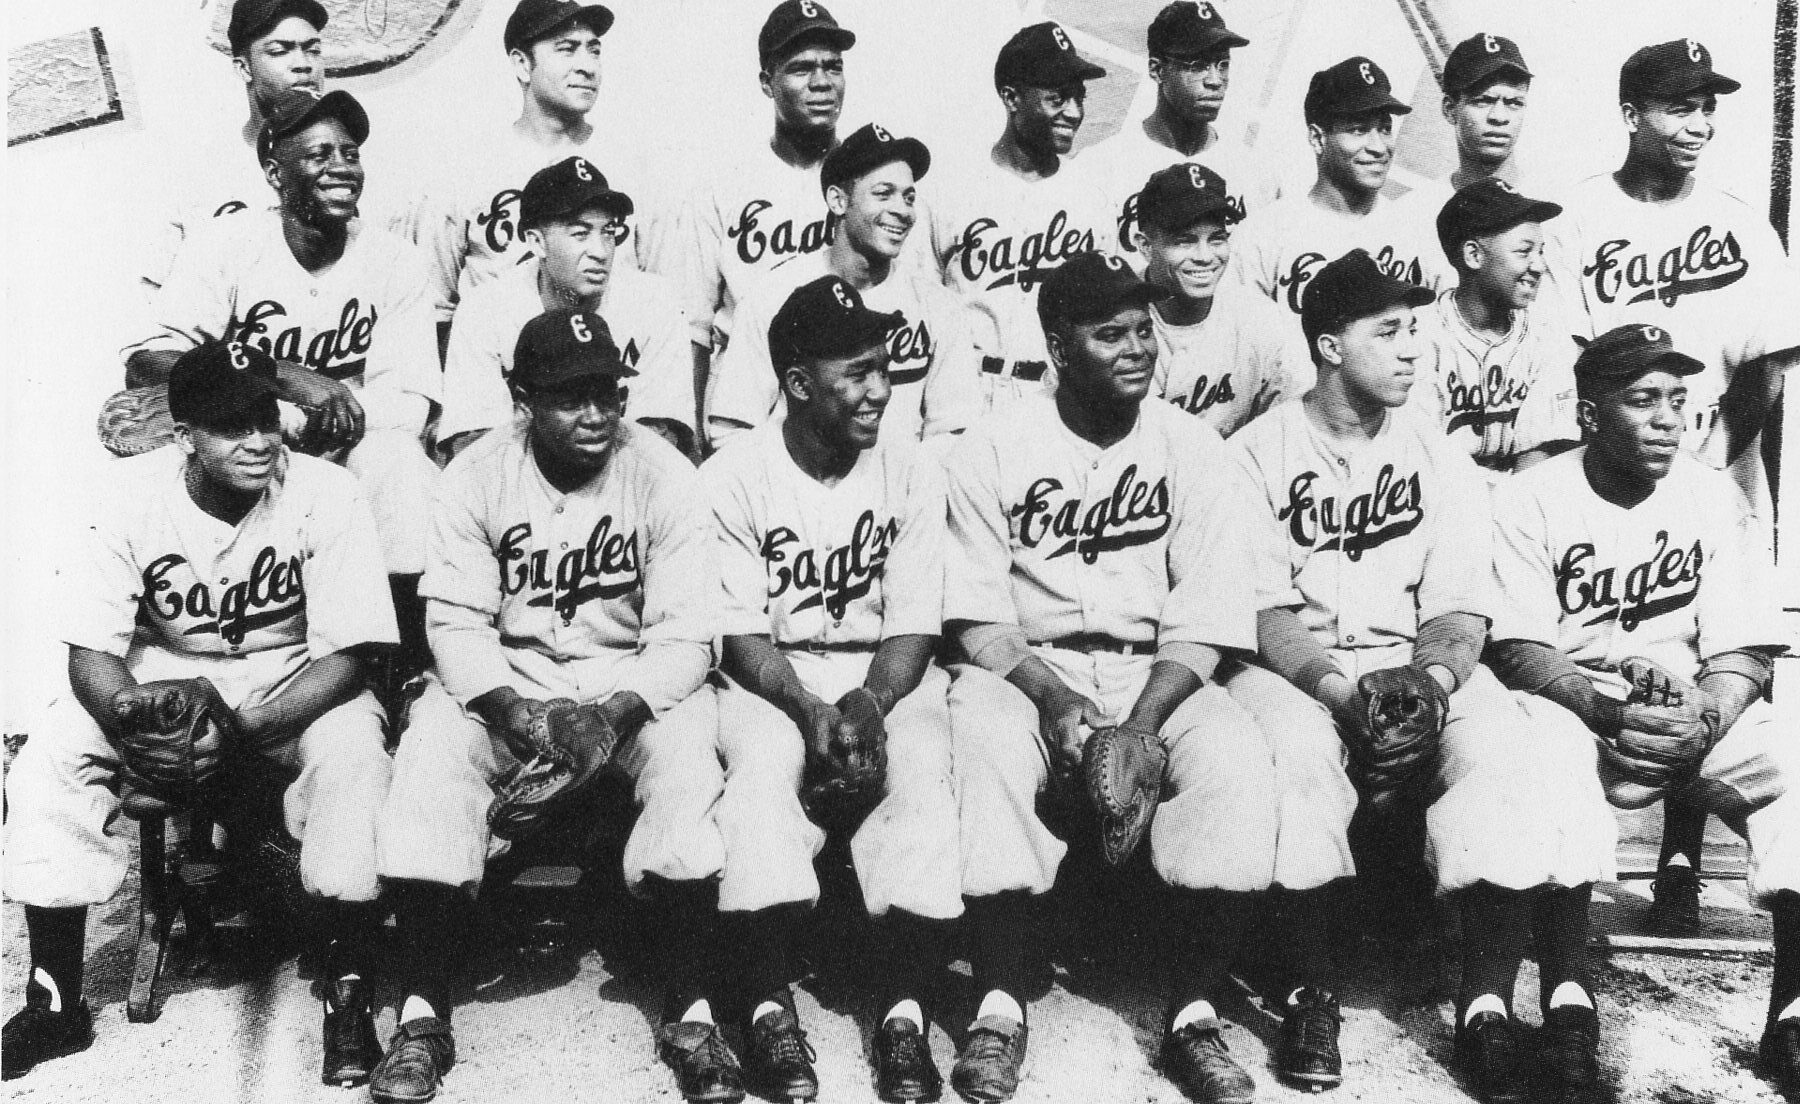 The 1946 Newark Eagles Including Monte Irvin and Larry Doby